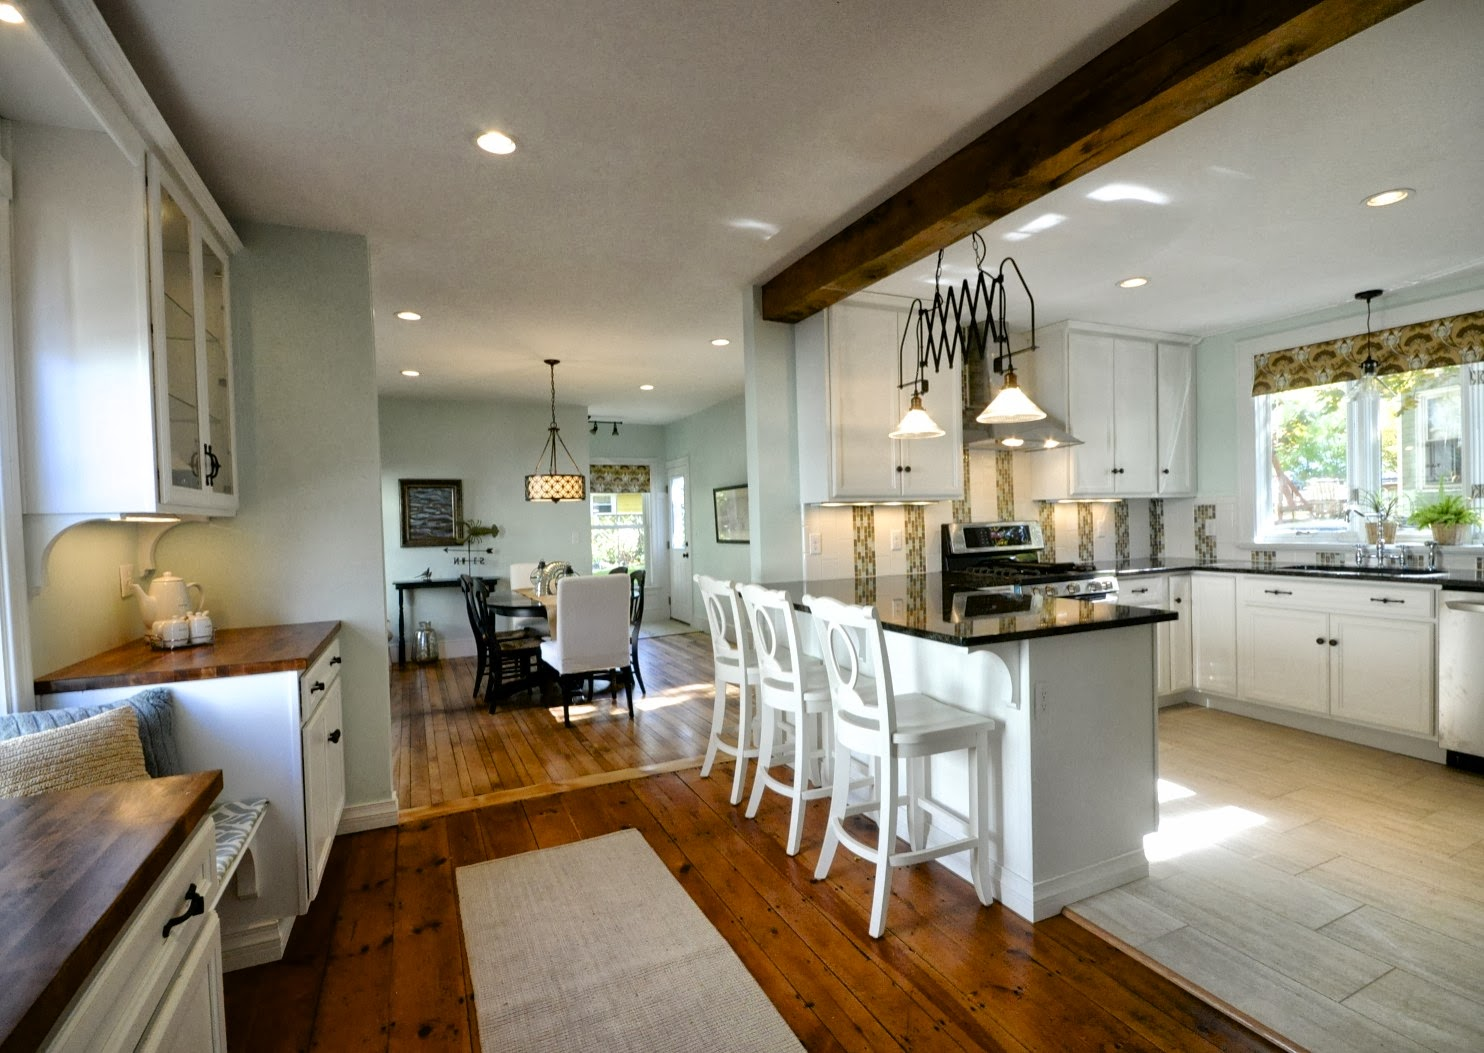 kitchen and dining room farmhouse create an open kitchen and dining area sopo cottage featured on remodelaholiccom remodelaholic creating room